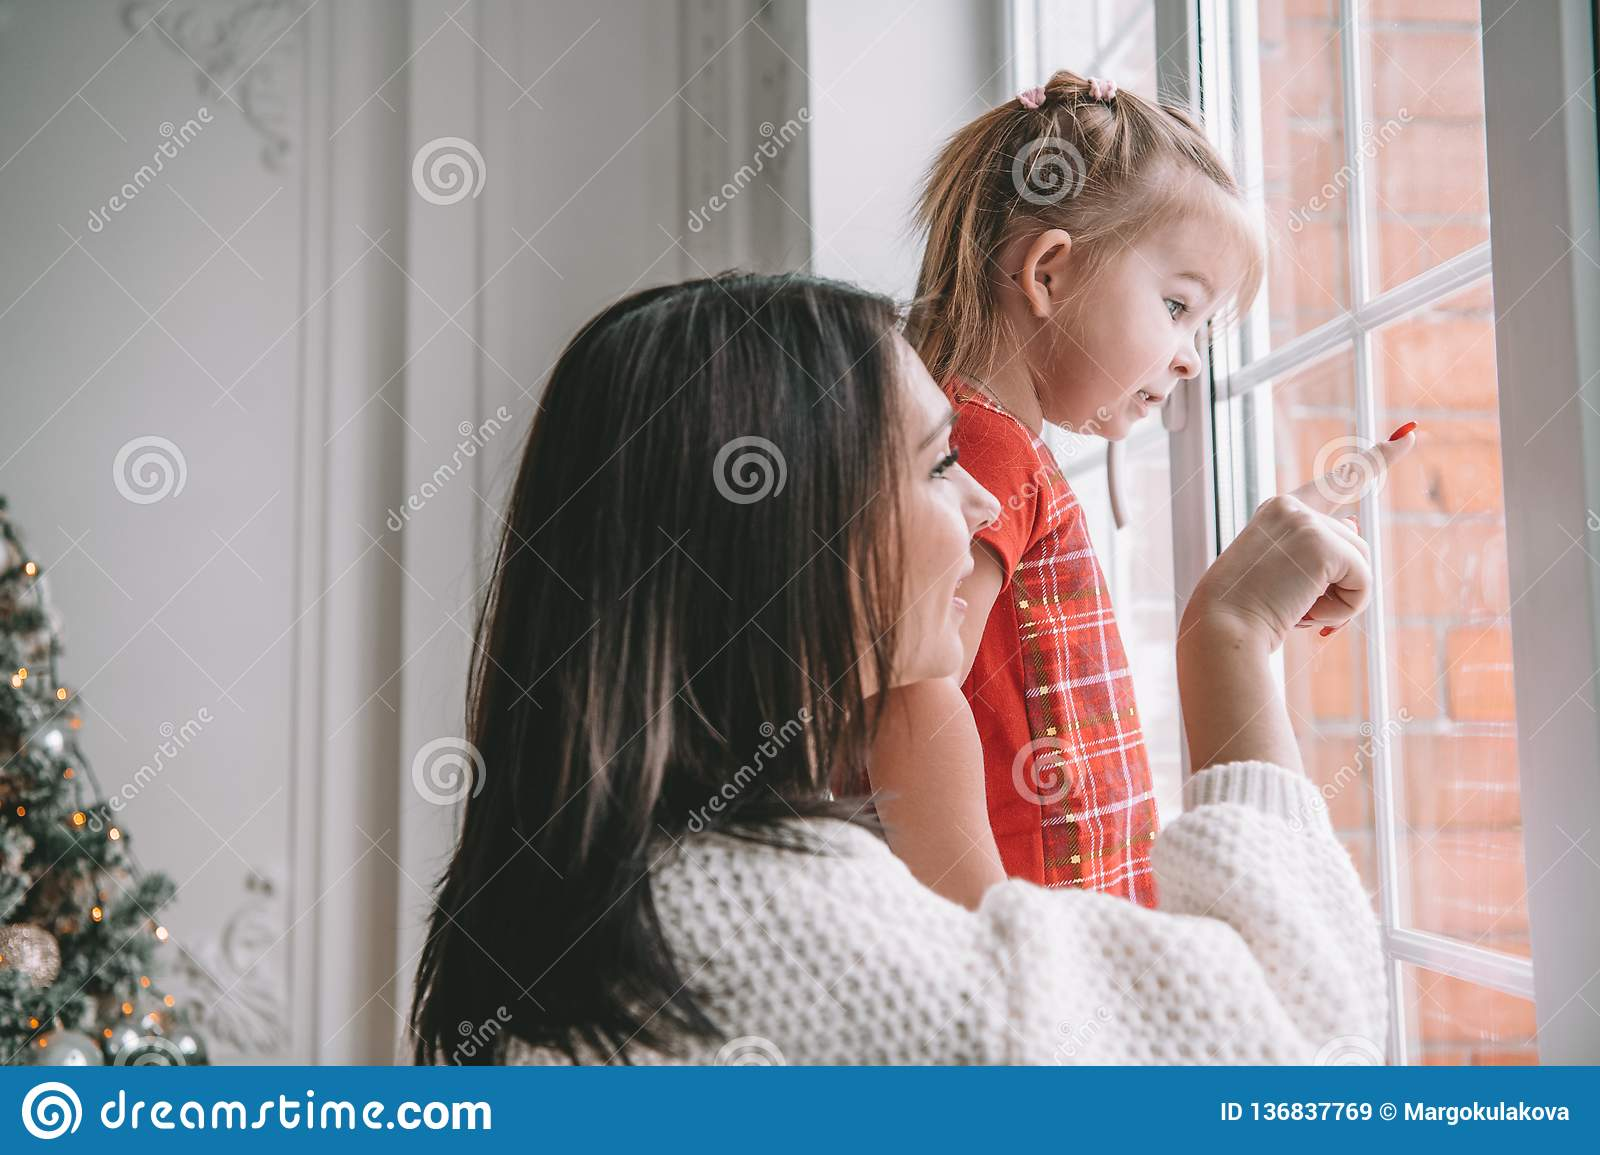 Loving mother playing with her baby girl looking at the window